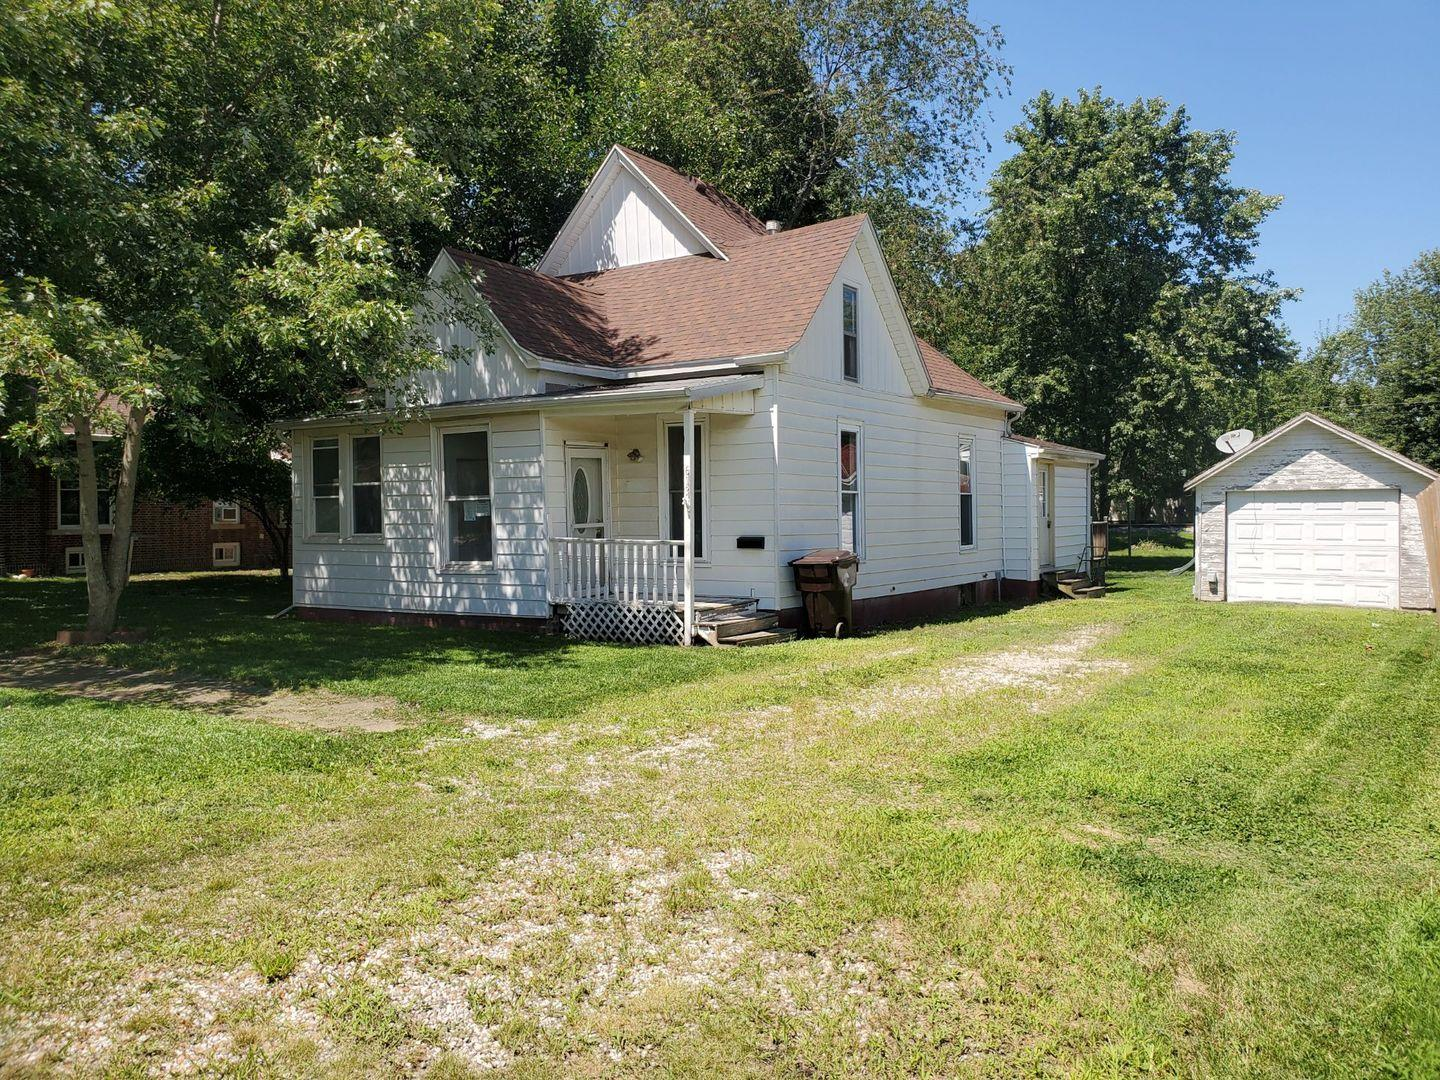 613 W Washington Street, Clinton, IL 61727 - #: 10822812